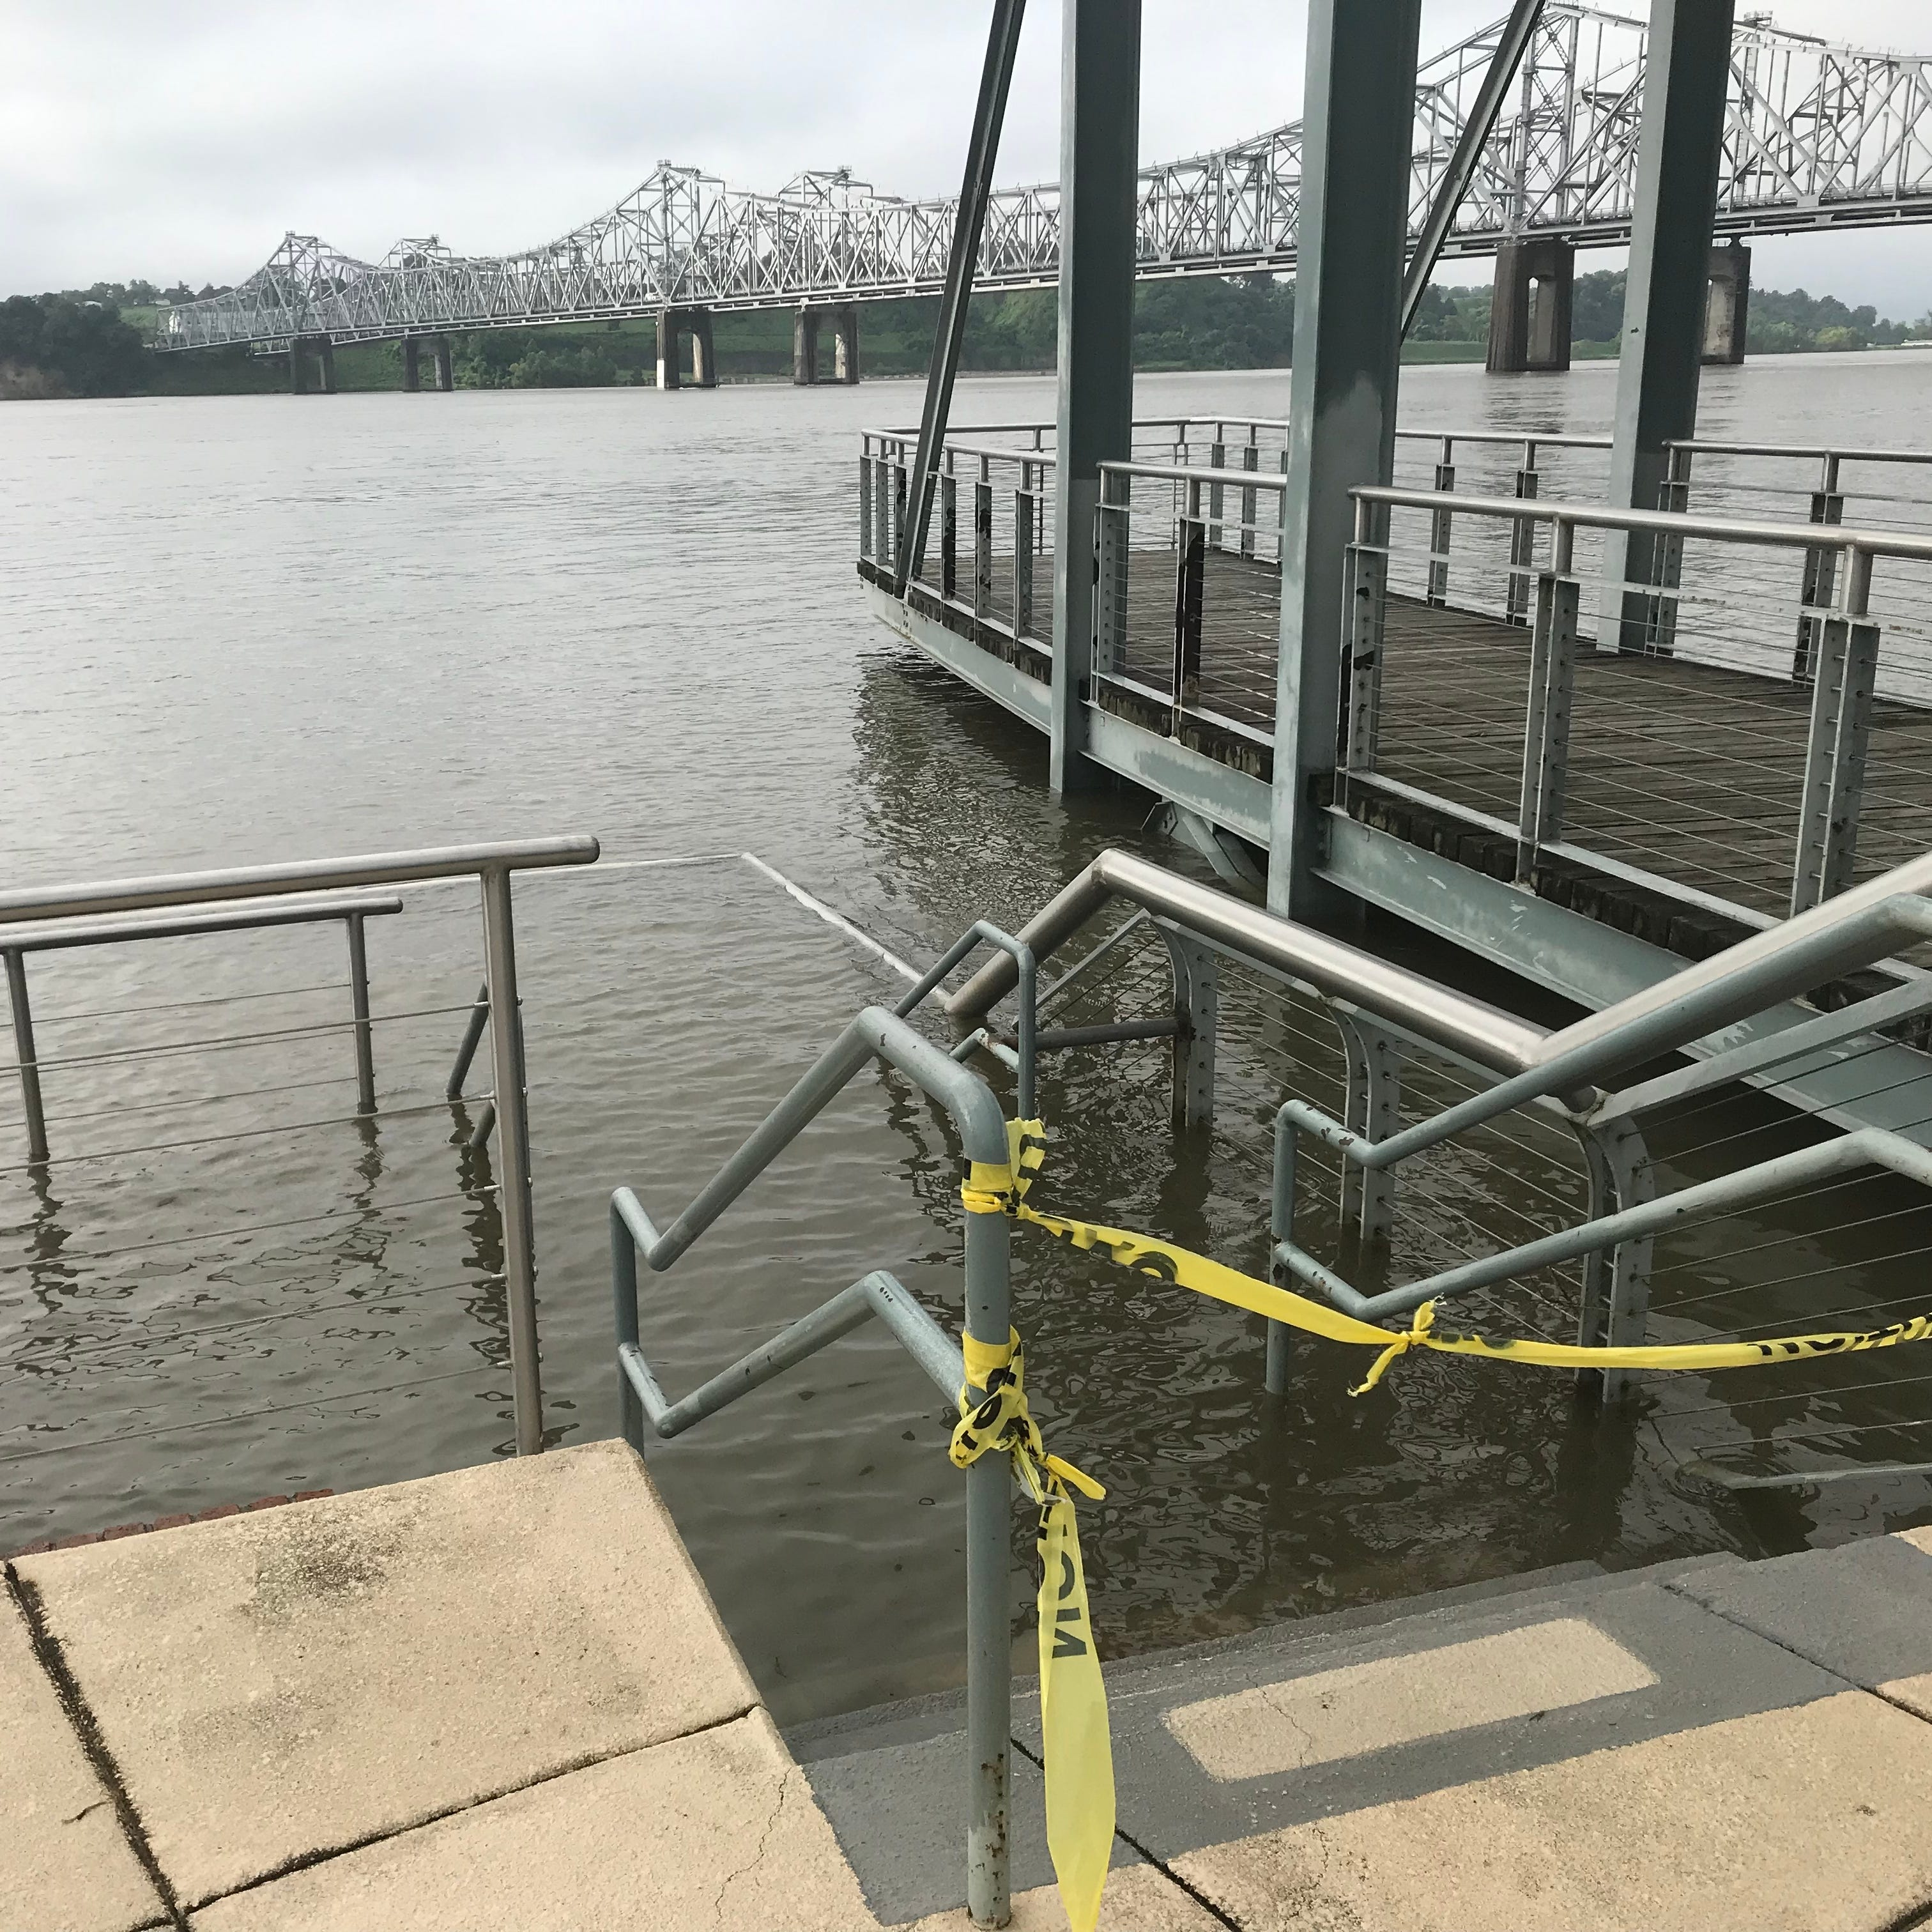 Mississippi River reaches record flood duration: 'I'm on pins and needles'